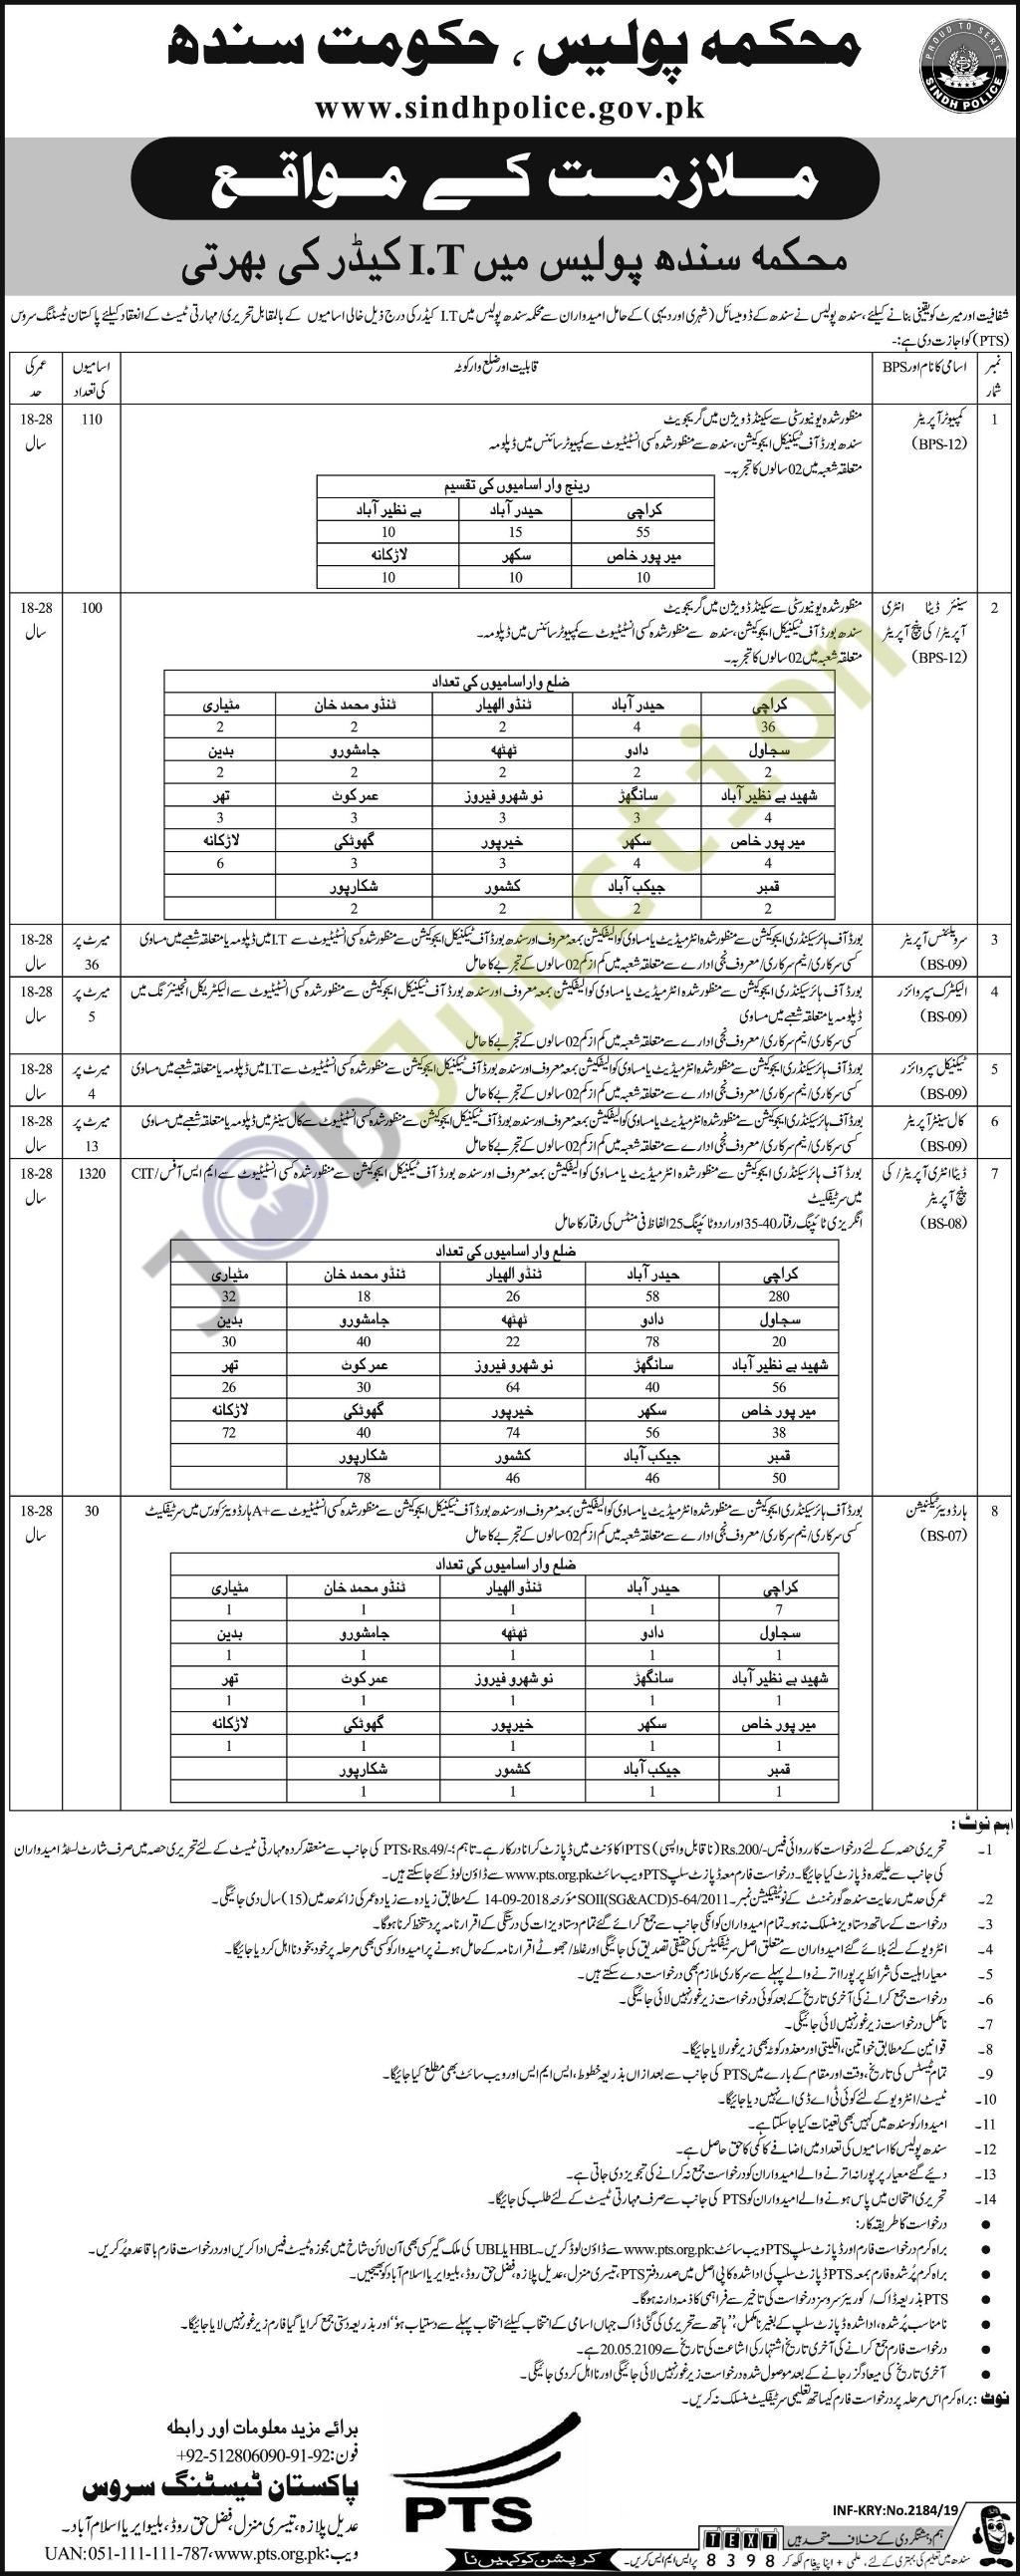 Senior Data Entry Operator Jobs in Sindh Police Department